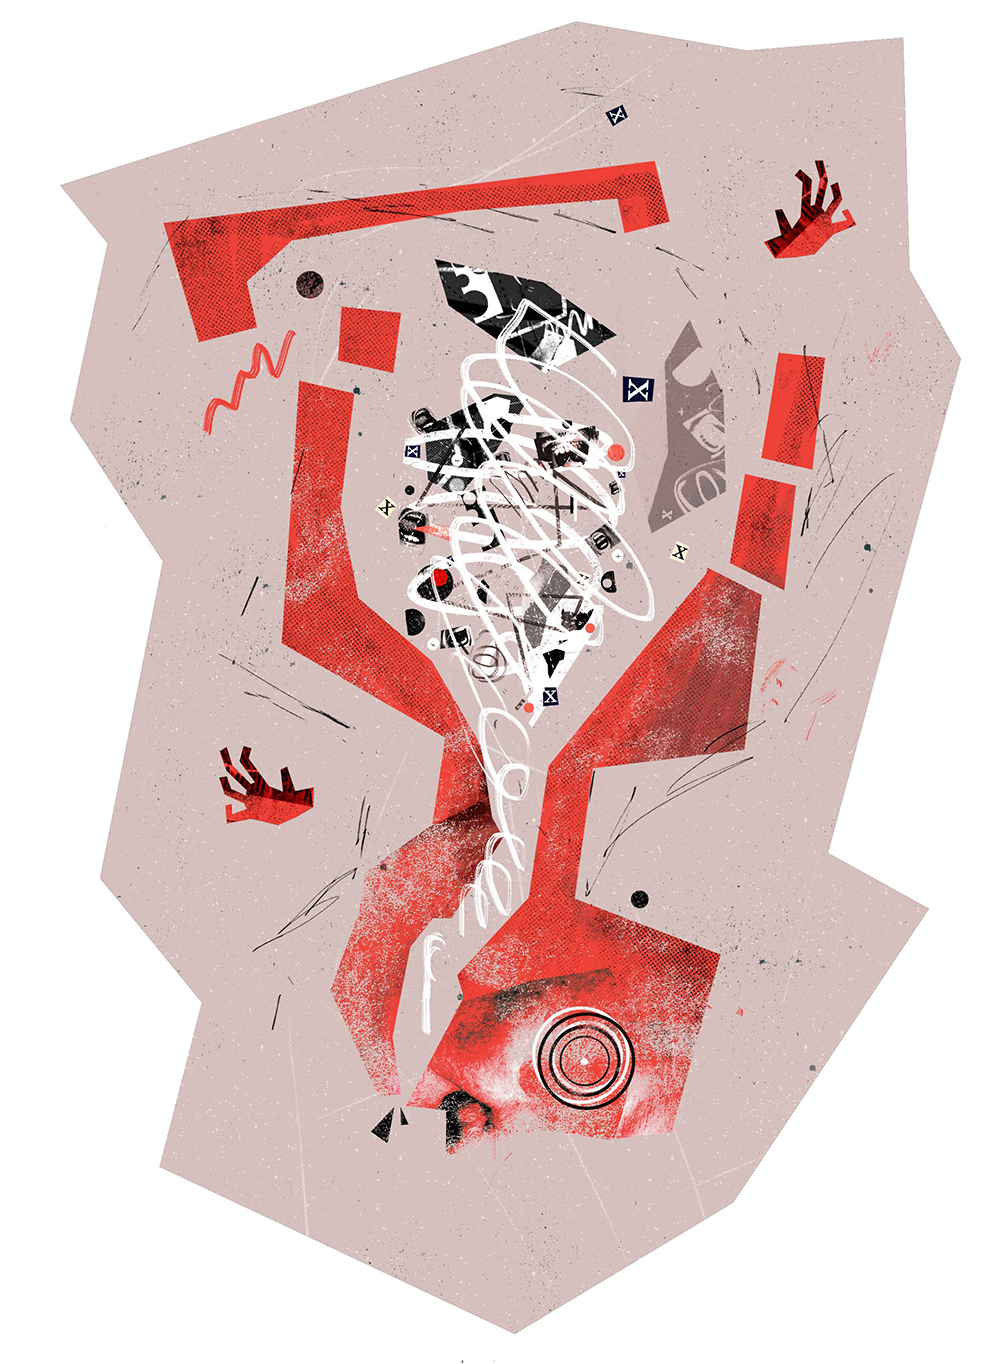 Abstract illustration of a red coloured body, face and hands upside down, with black and white bits and spirals inside